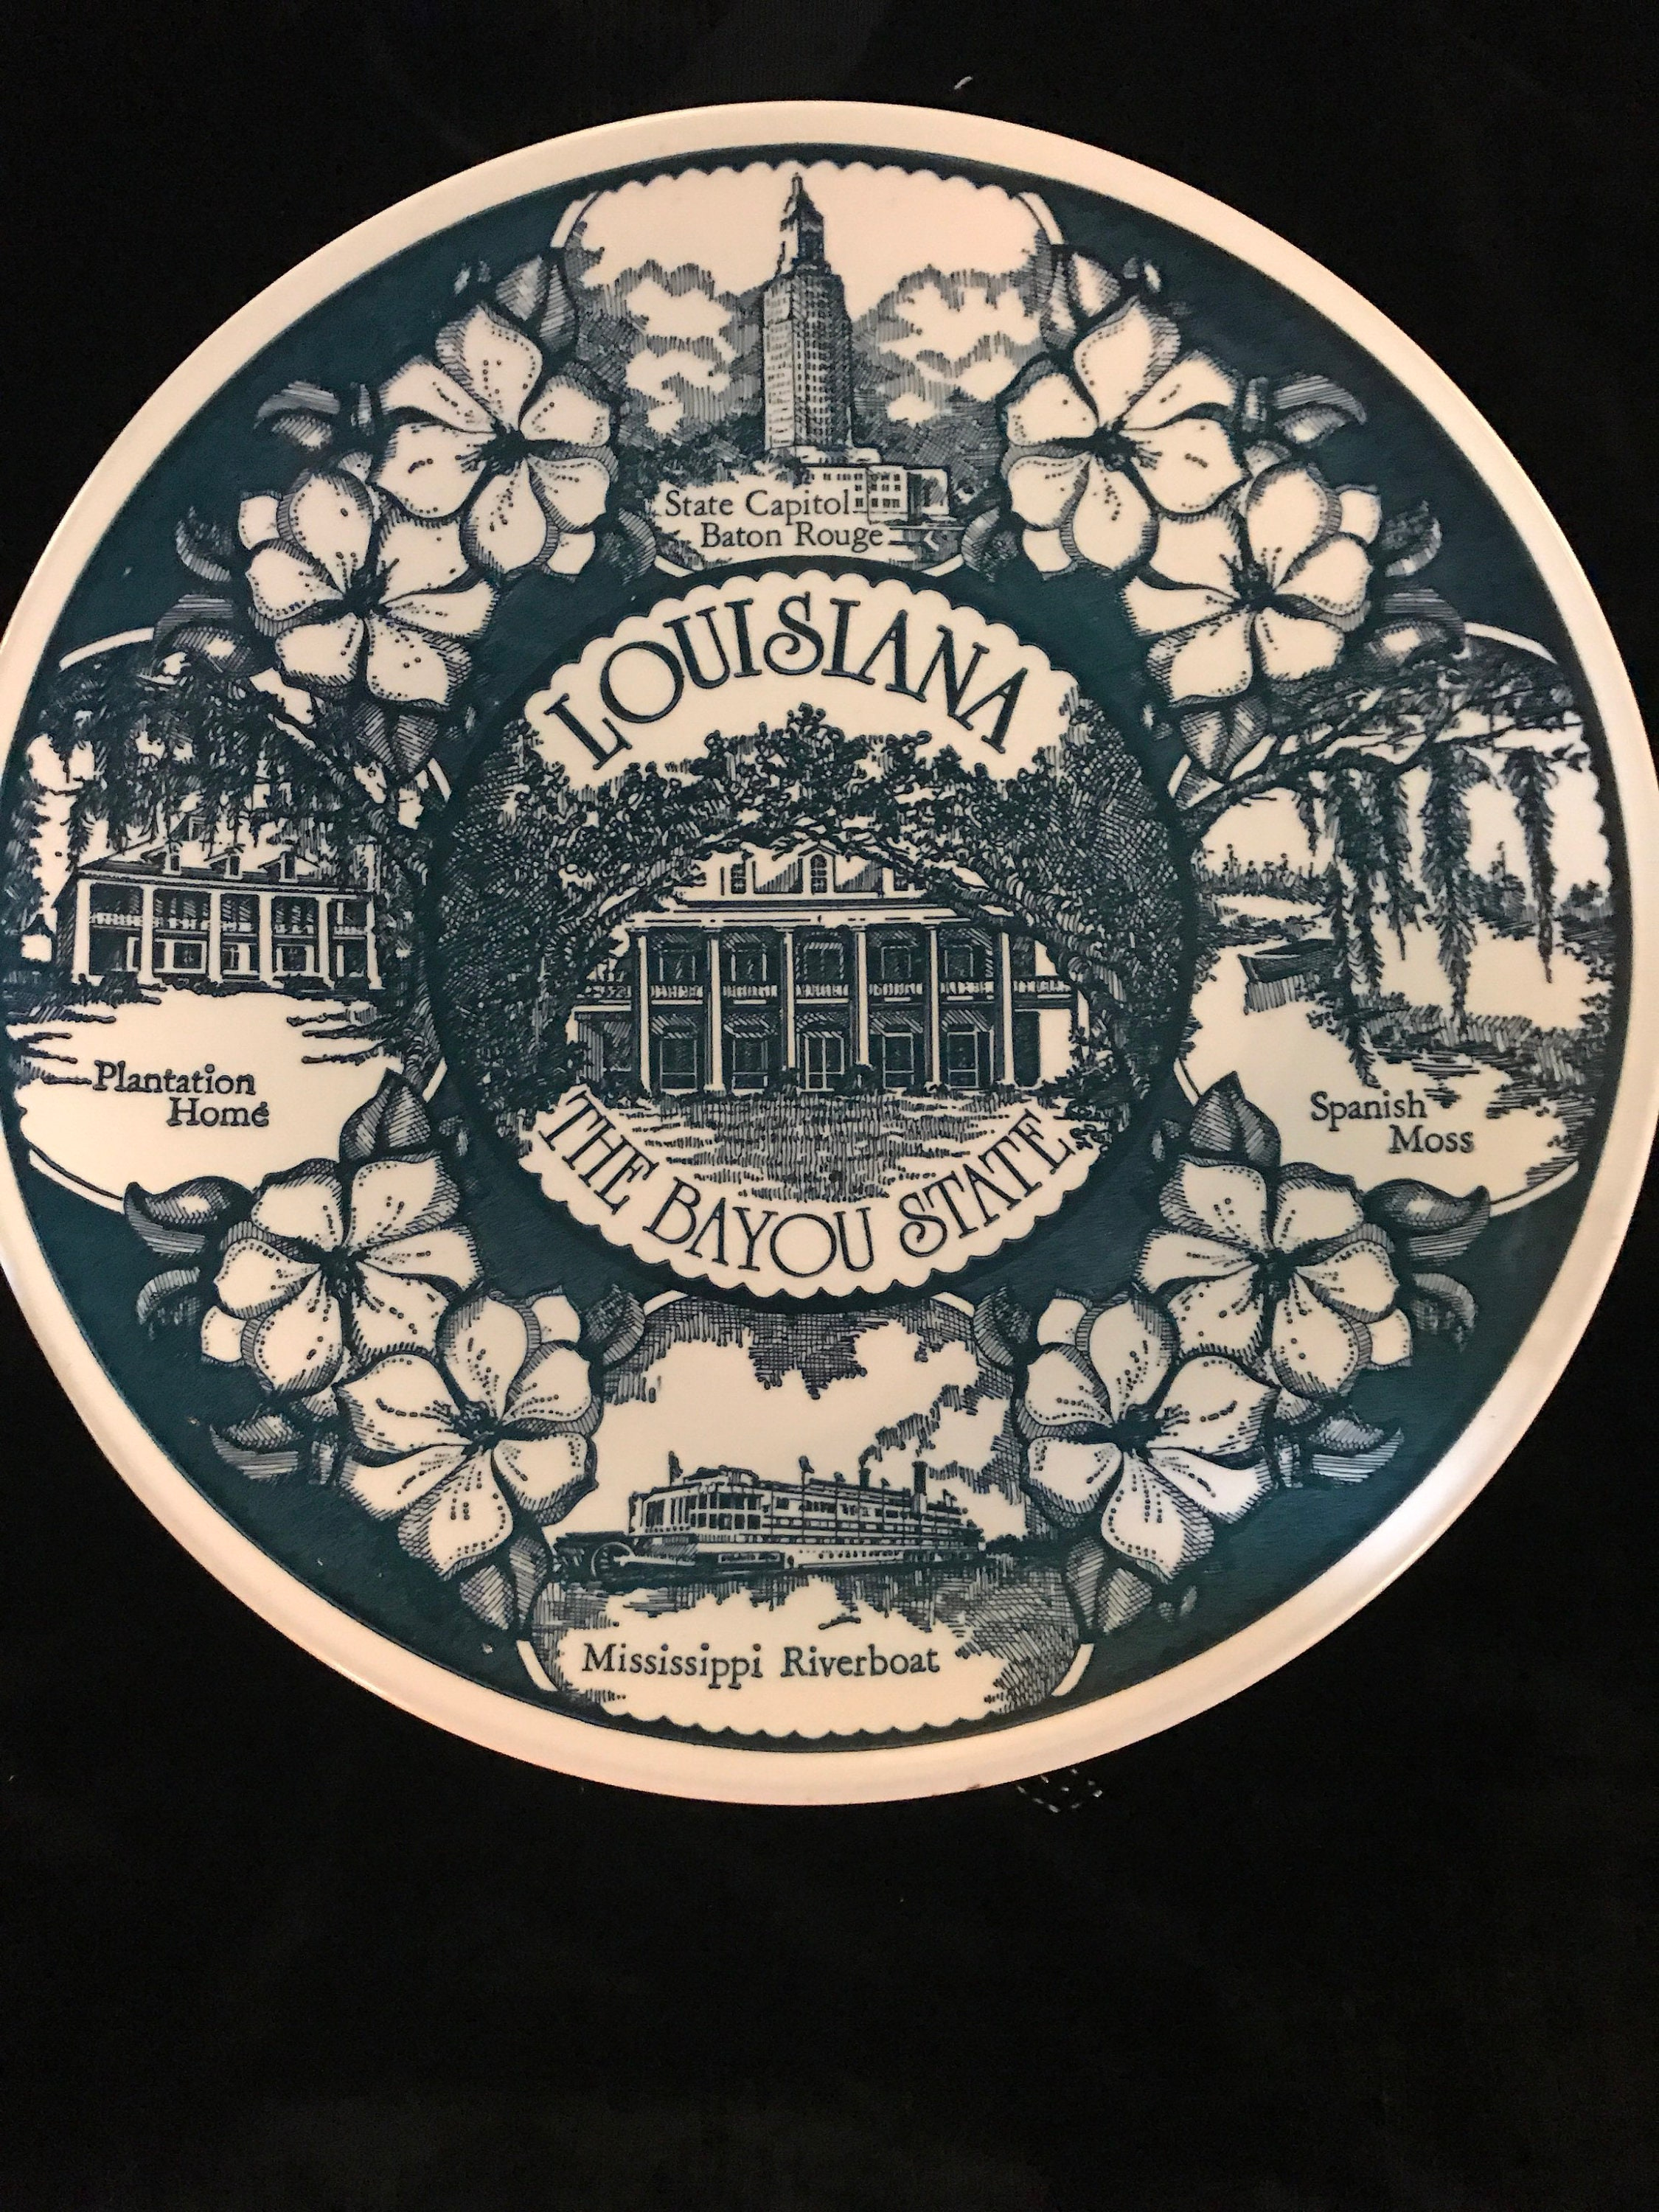 Vintage Louisiana State Plate Vintage Plate Blue and White